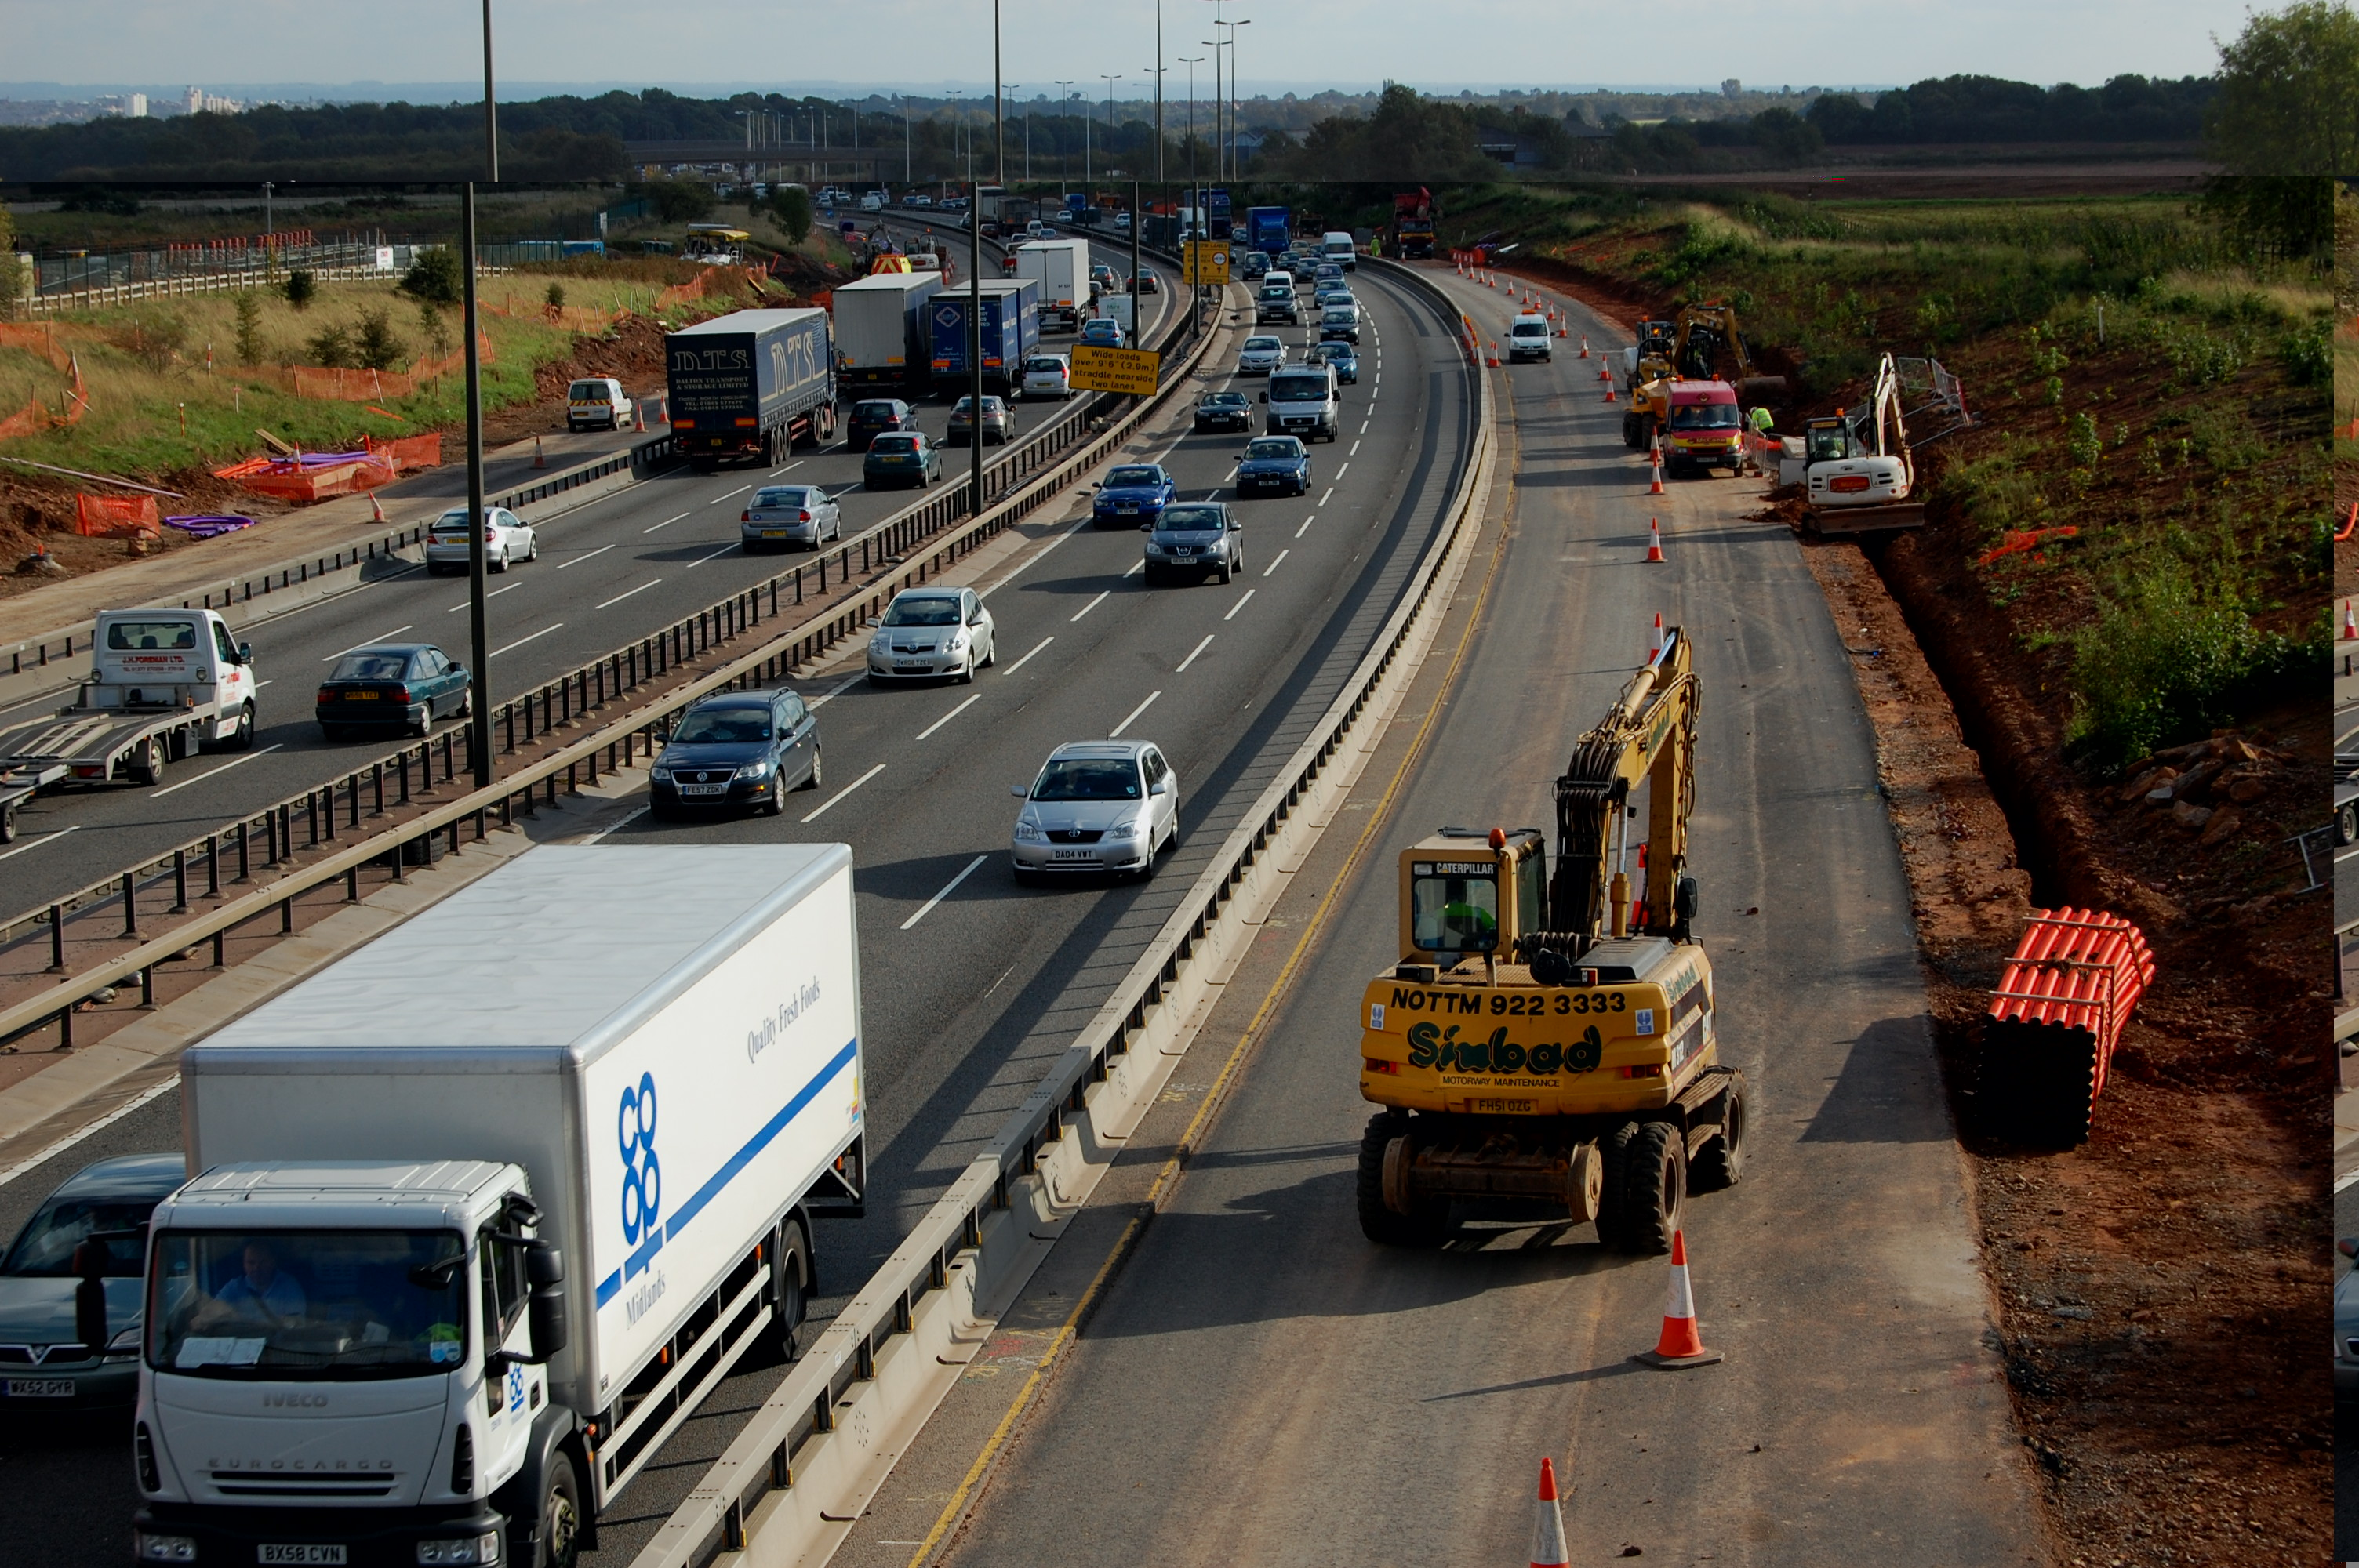 M1 widening MVM - The Logistics Business UK